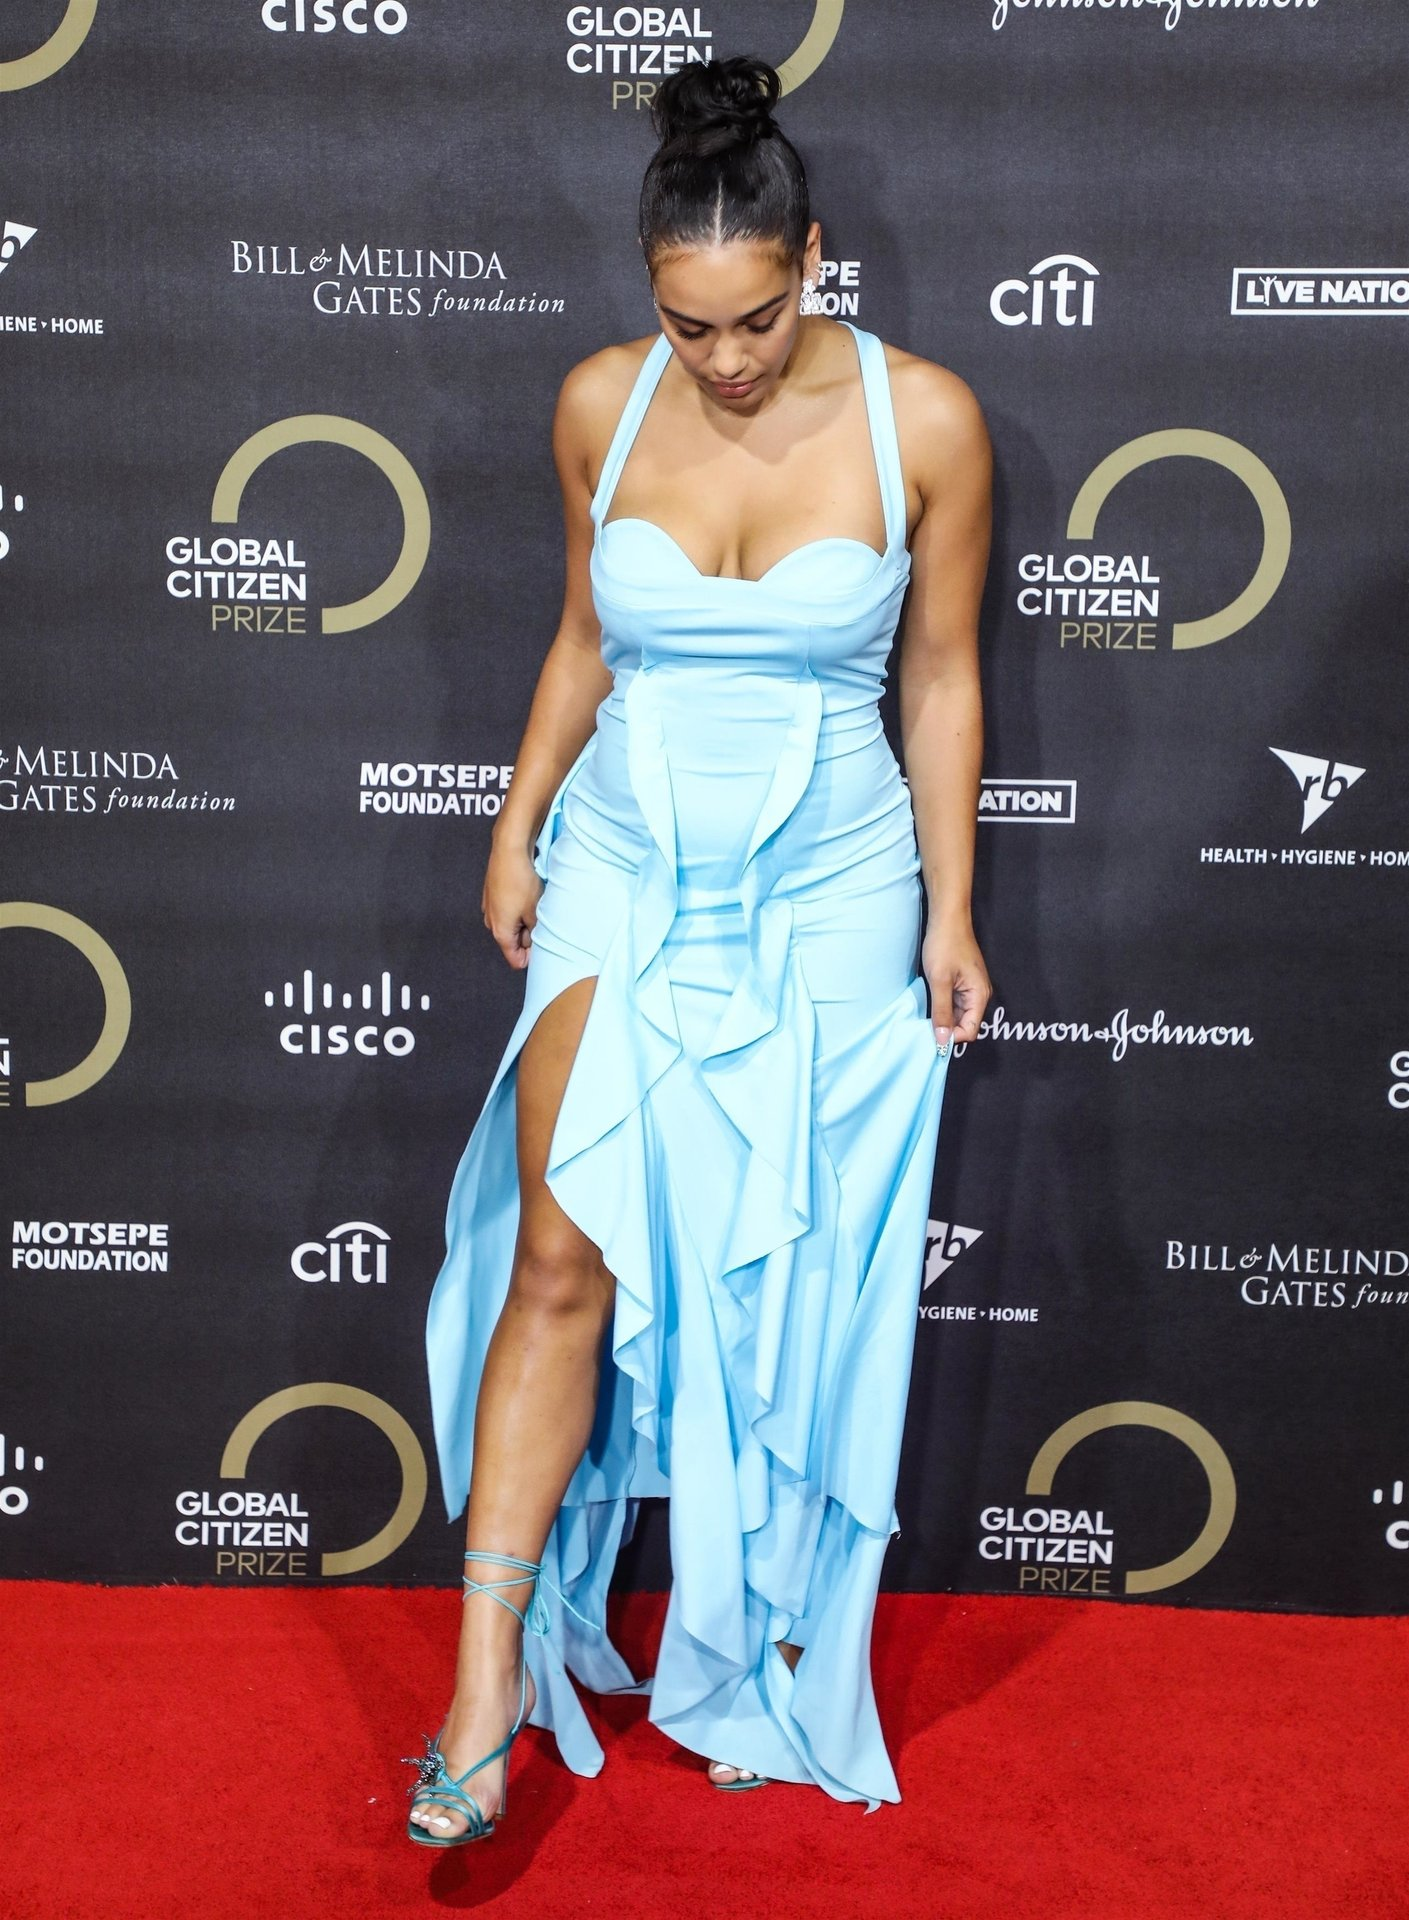 Jorja Smith attends the Global Citizen Prize at the Royal Albert Hall in London, 12/13/2019.